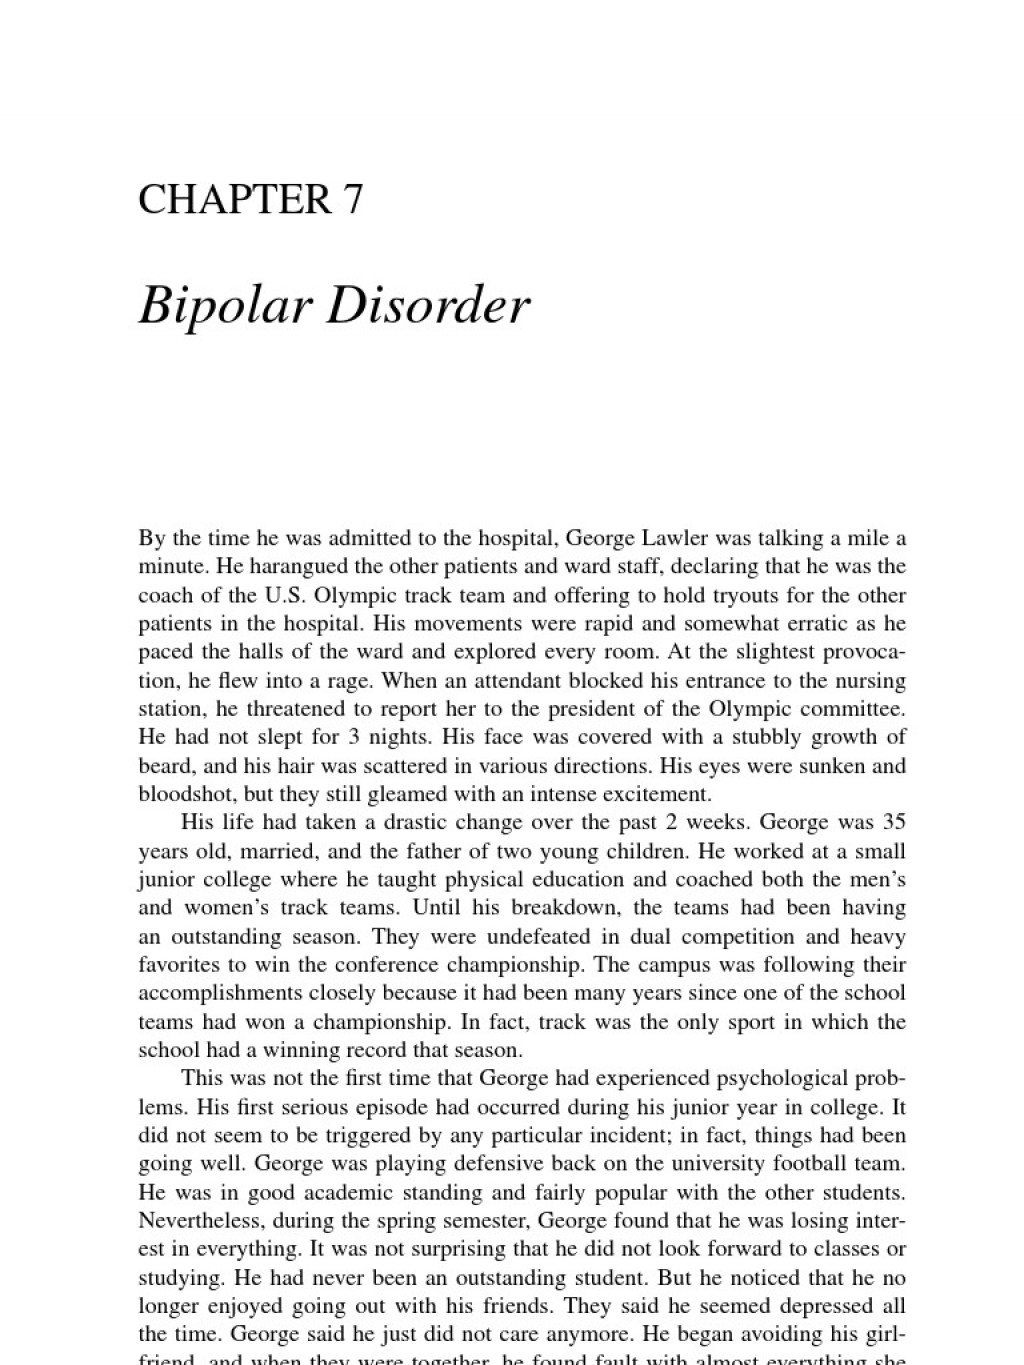 003 Research Paper Case Study Bipolar Disorder Scribd On Unusual Pdf Large